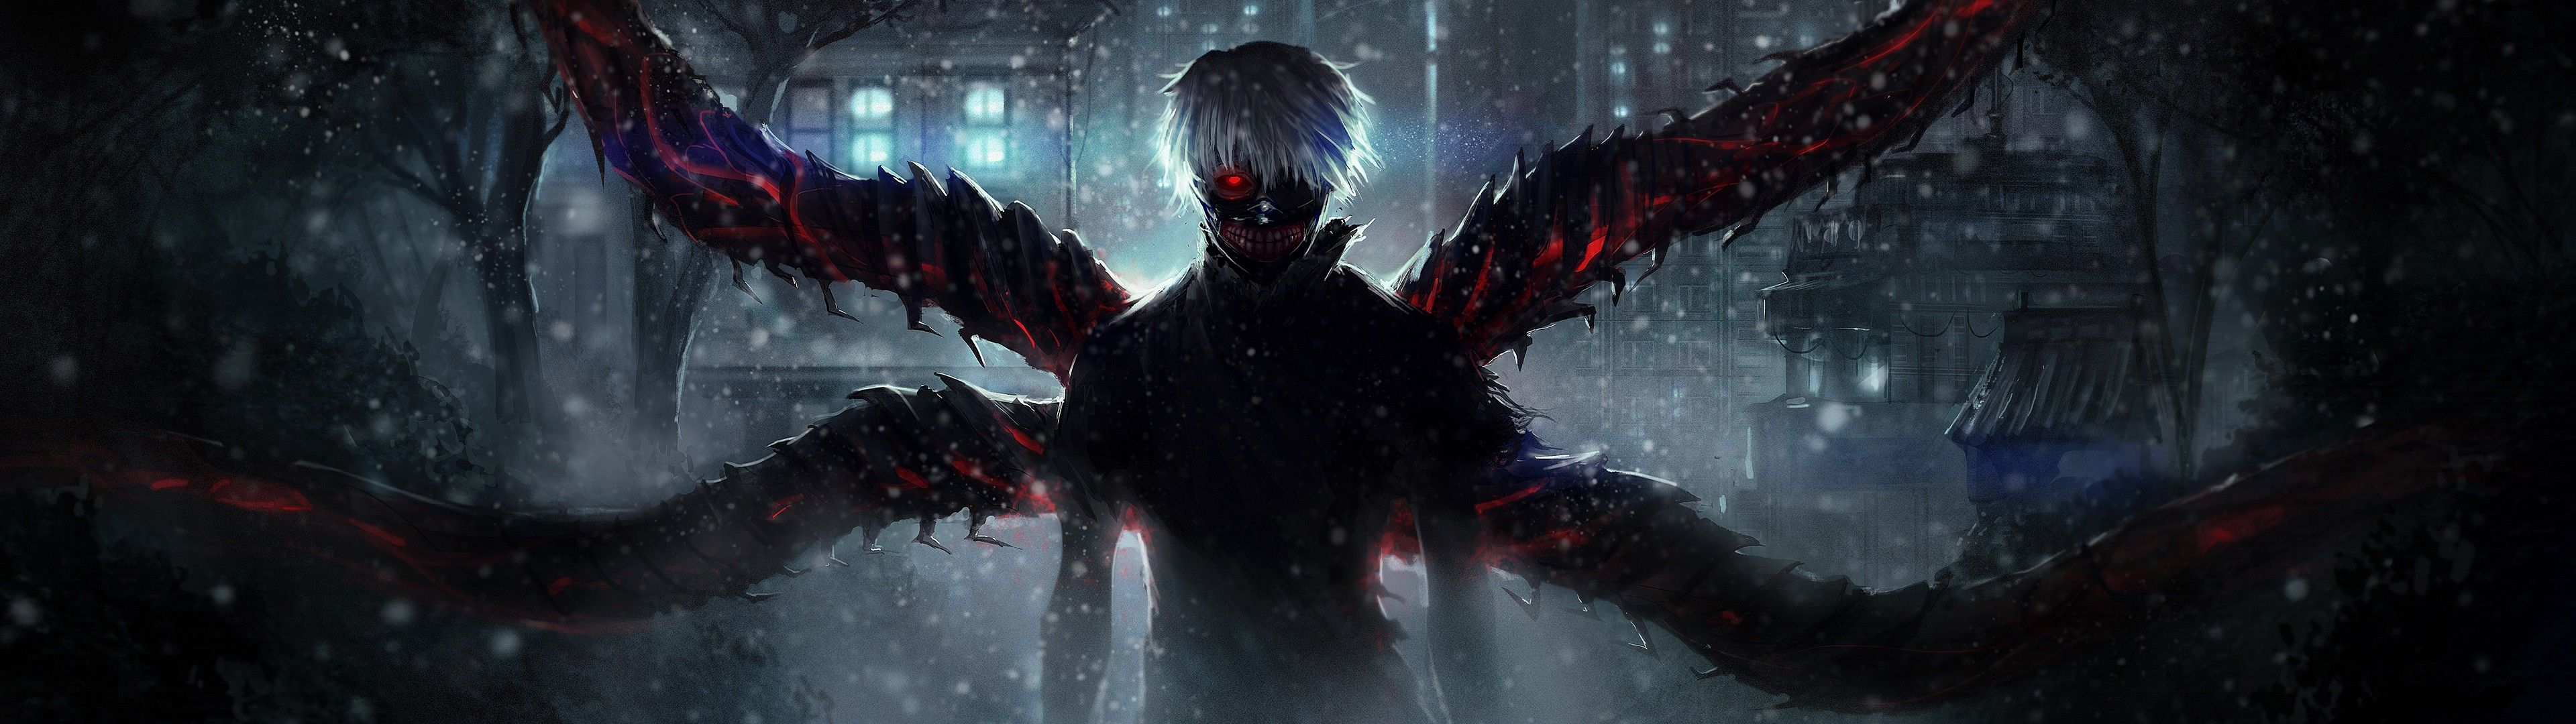 3840x1080 Dual Monitor wallpaper Anime ·① Download free awesome wallpapers ...